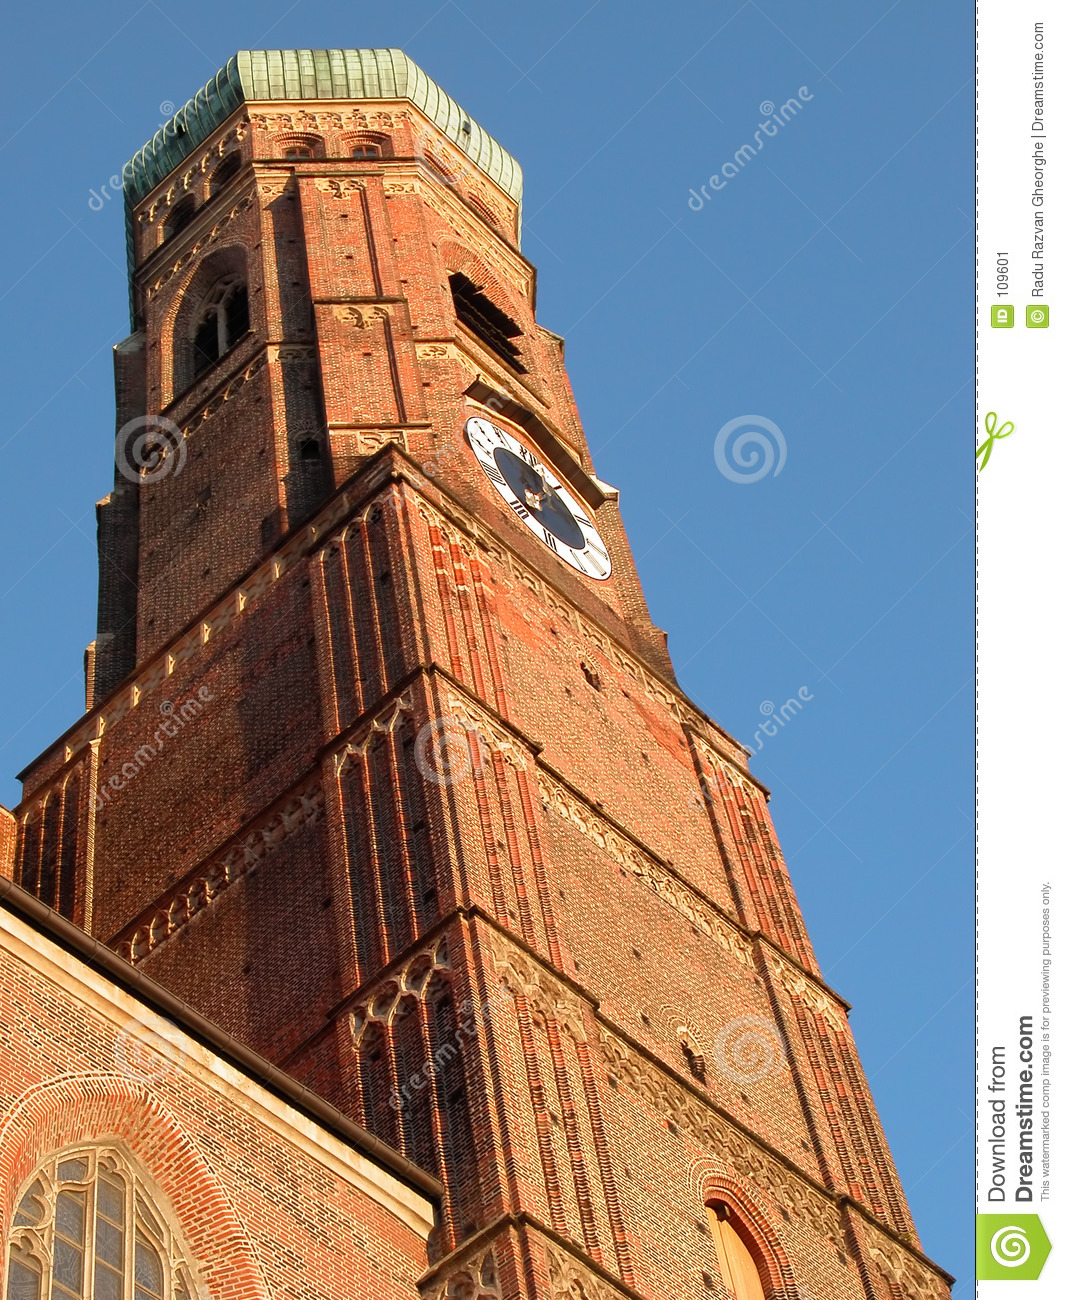 Download Cathedral tower stock image. Image of church, tall, architecture - 109601